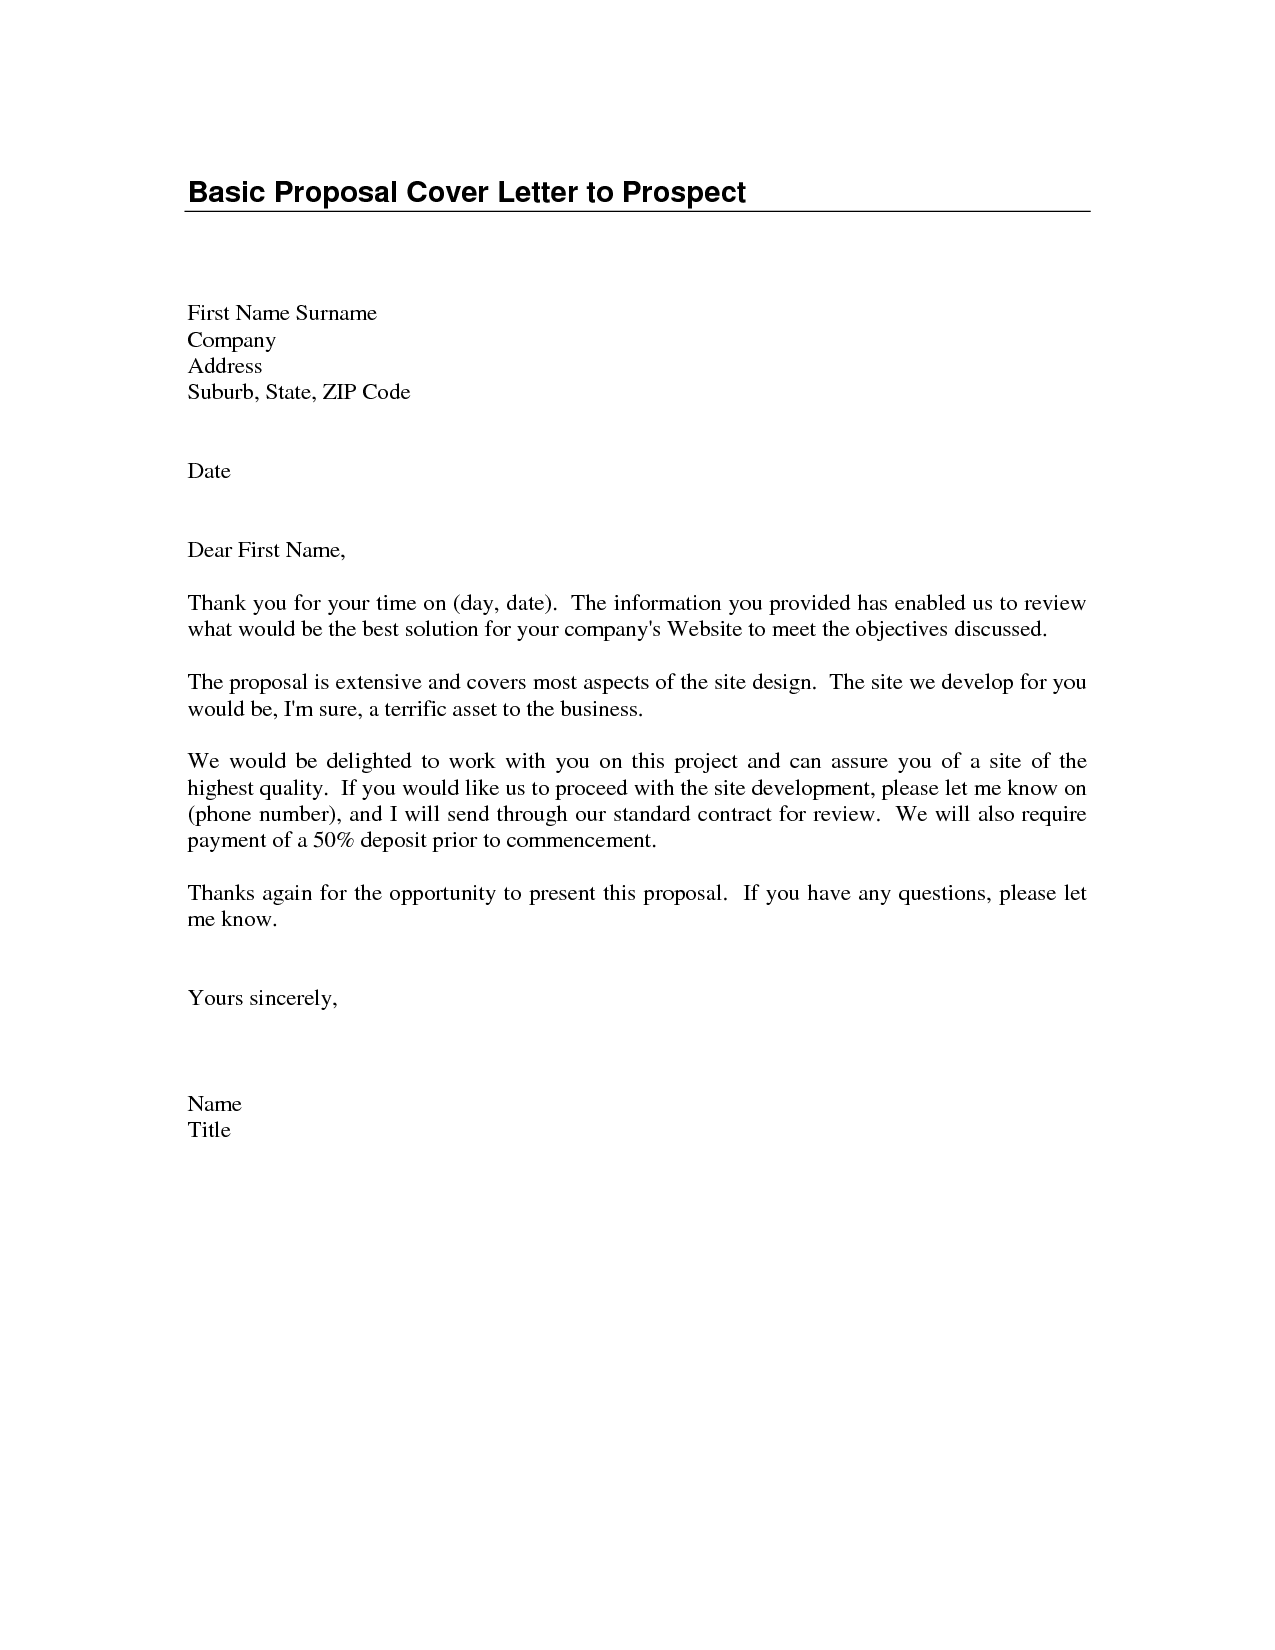 Cover Letter Basic Format - Format of a cover letter